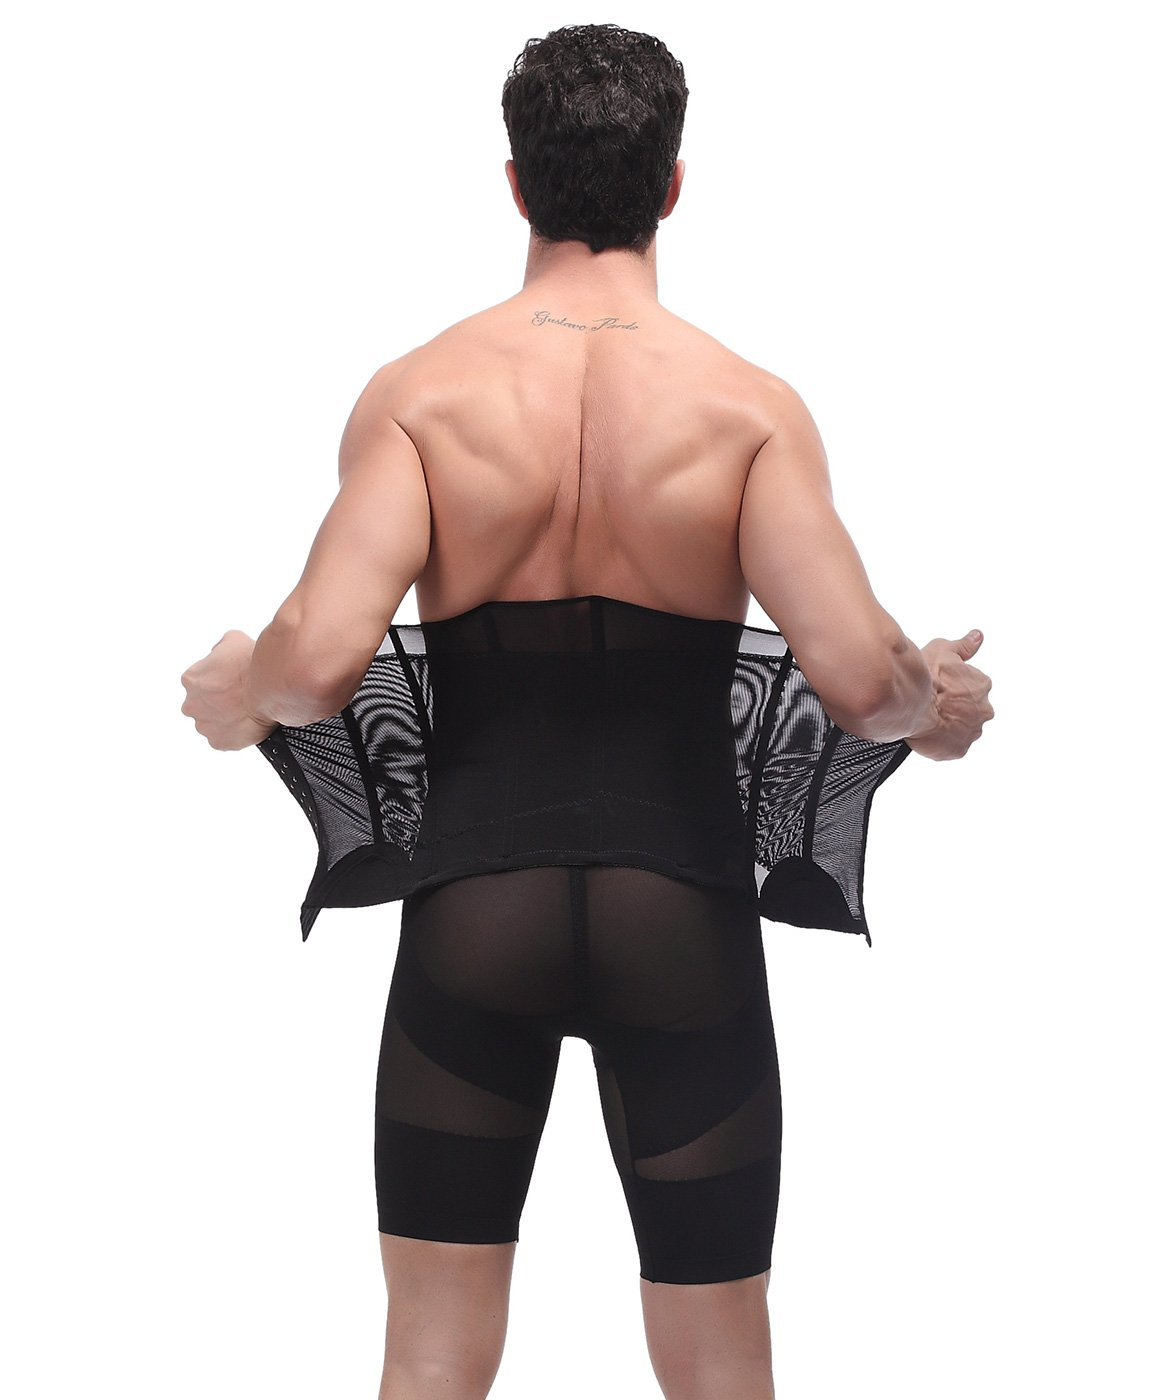 Panegy Mens Waist Trainer Girdle Mesh Beer Belly Trimmer with Adjustable Hooks HJLFS3239-3244